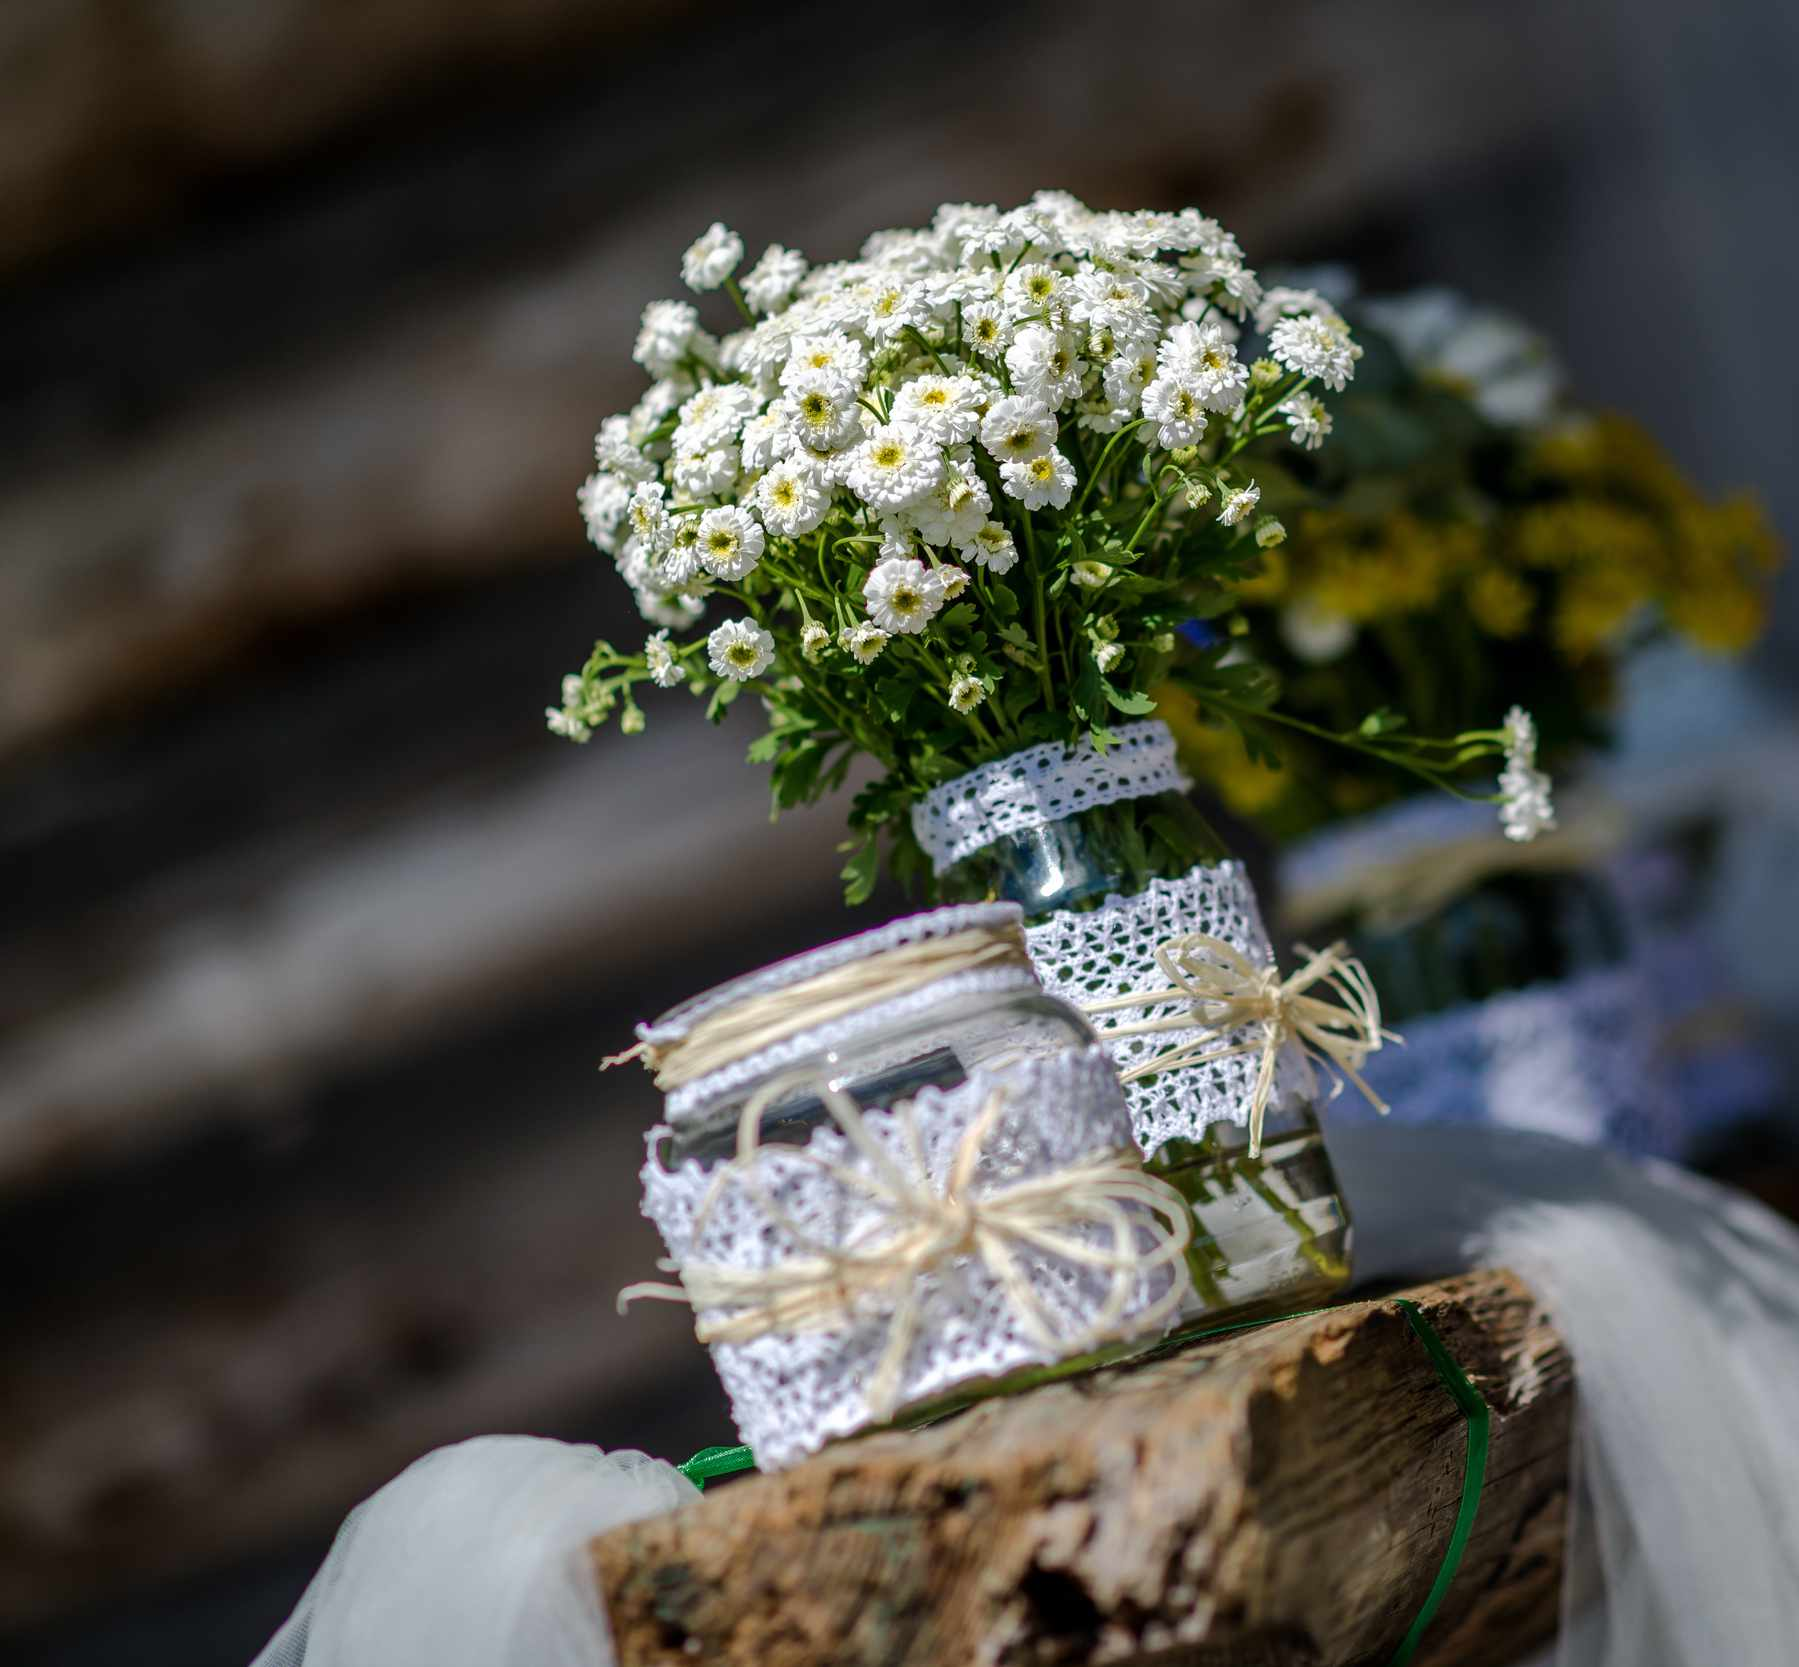 rustic cotton arrangement farmhouse decor rustic decor.htm tired trends in home decor and what to try instead  tired trends in home decor and what to